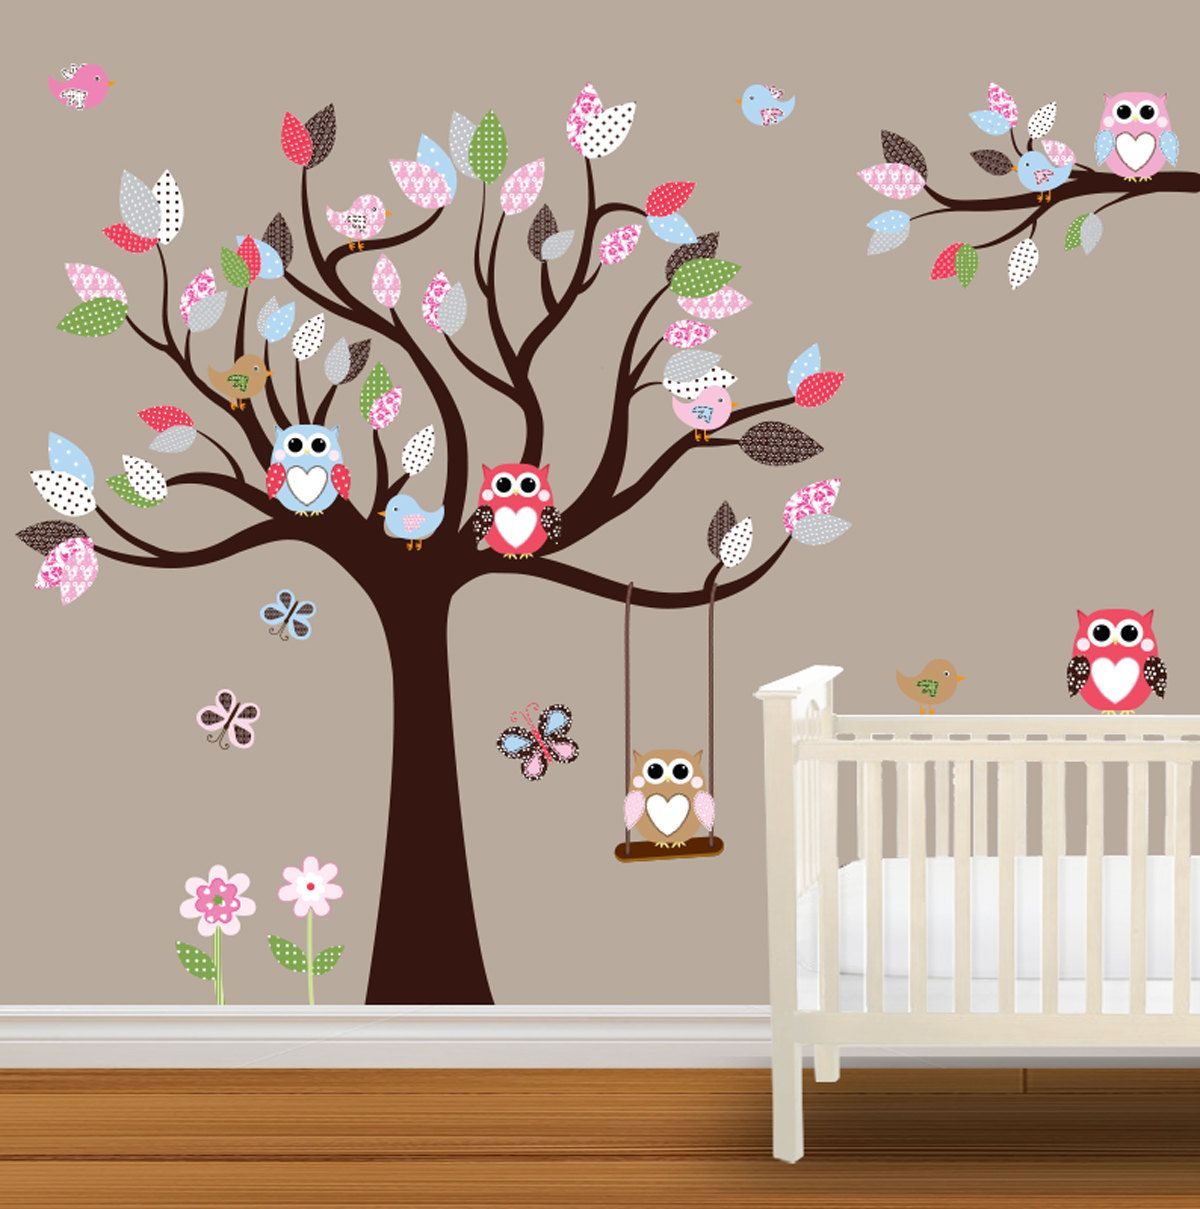 Baby boy room decor stickers - Owl Baby Nurseries Baby Nursery Wall Stickers Children Wall Decal By Nurserydecals